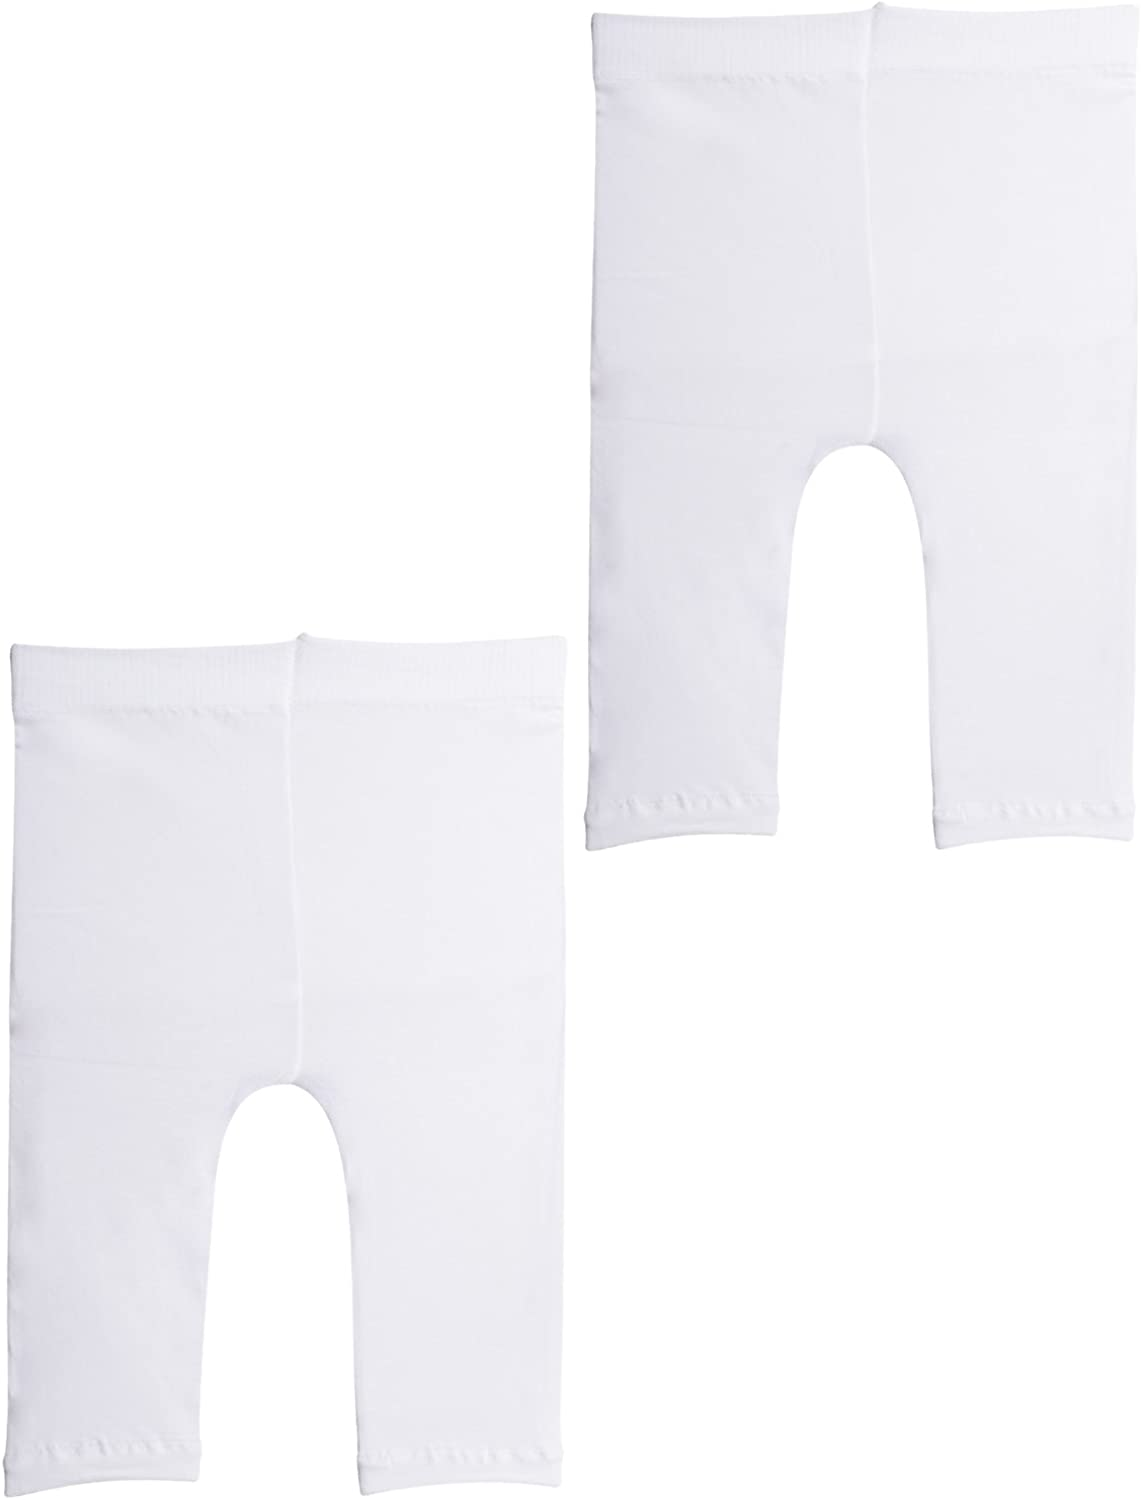 2 Pairs SEMI Opaque Cropped Leggins 12 Months, 2 Pairs White Black,White 50 DEN Italian Hosiery | Baby Footless Thights